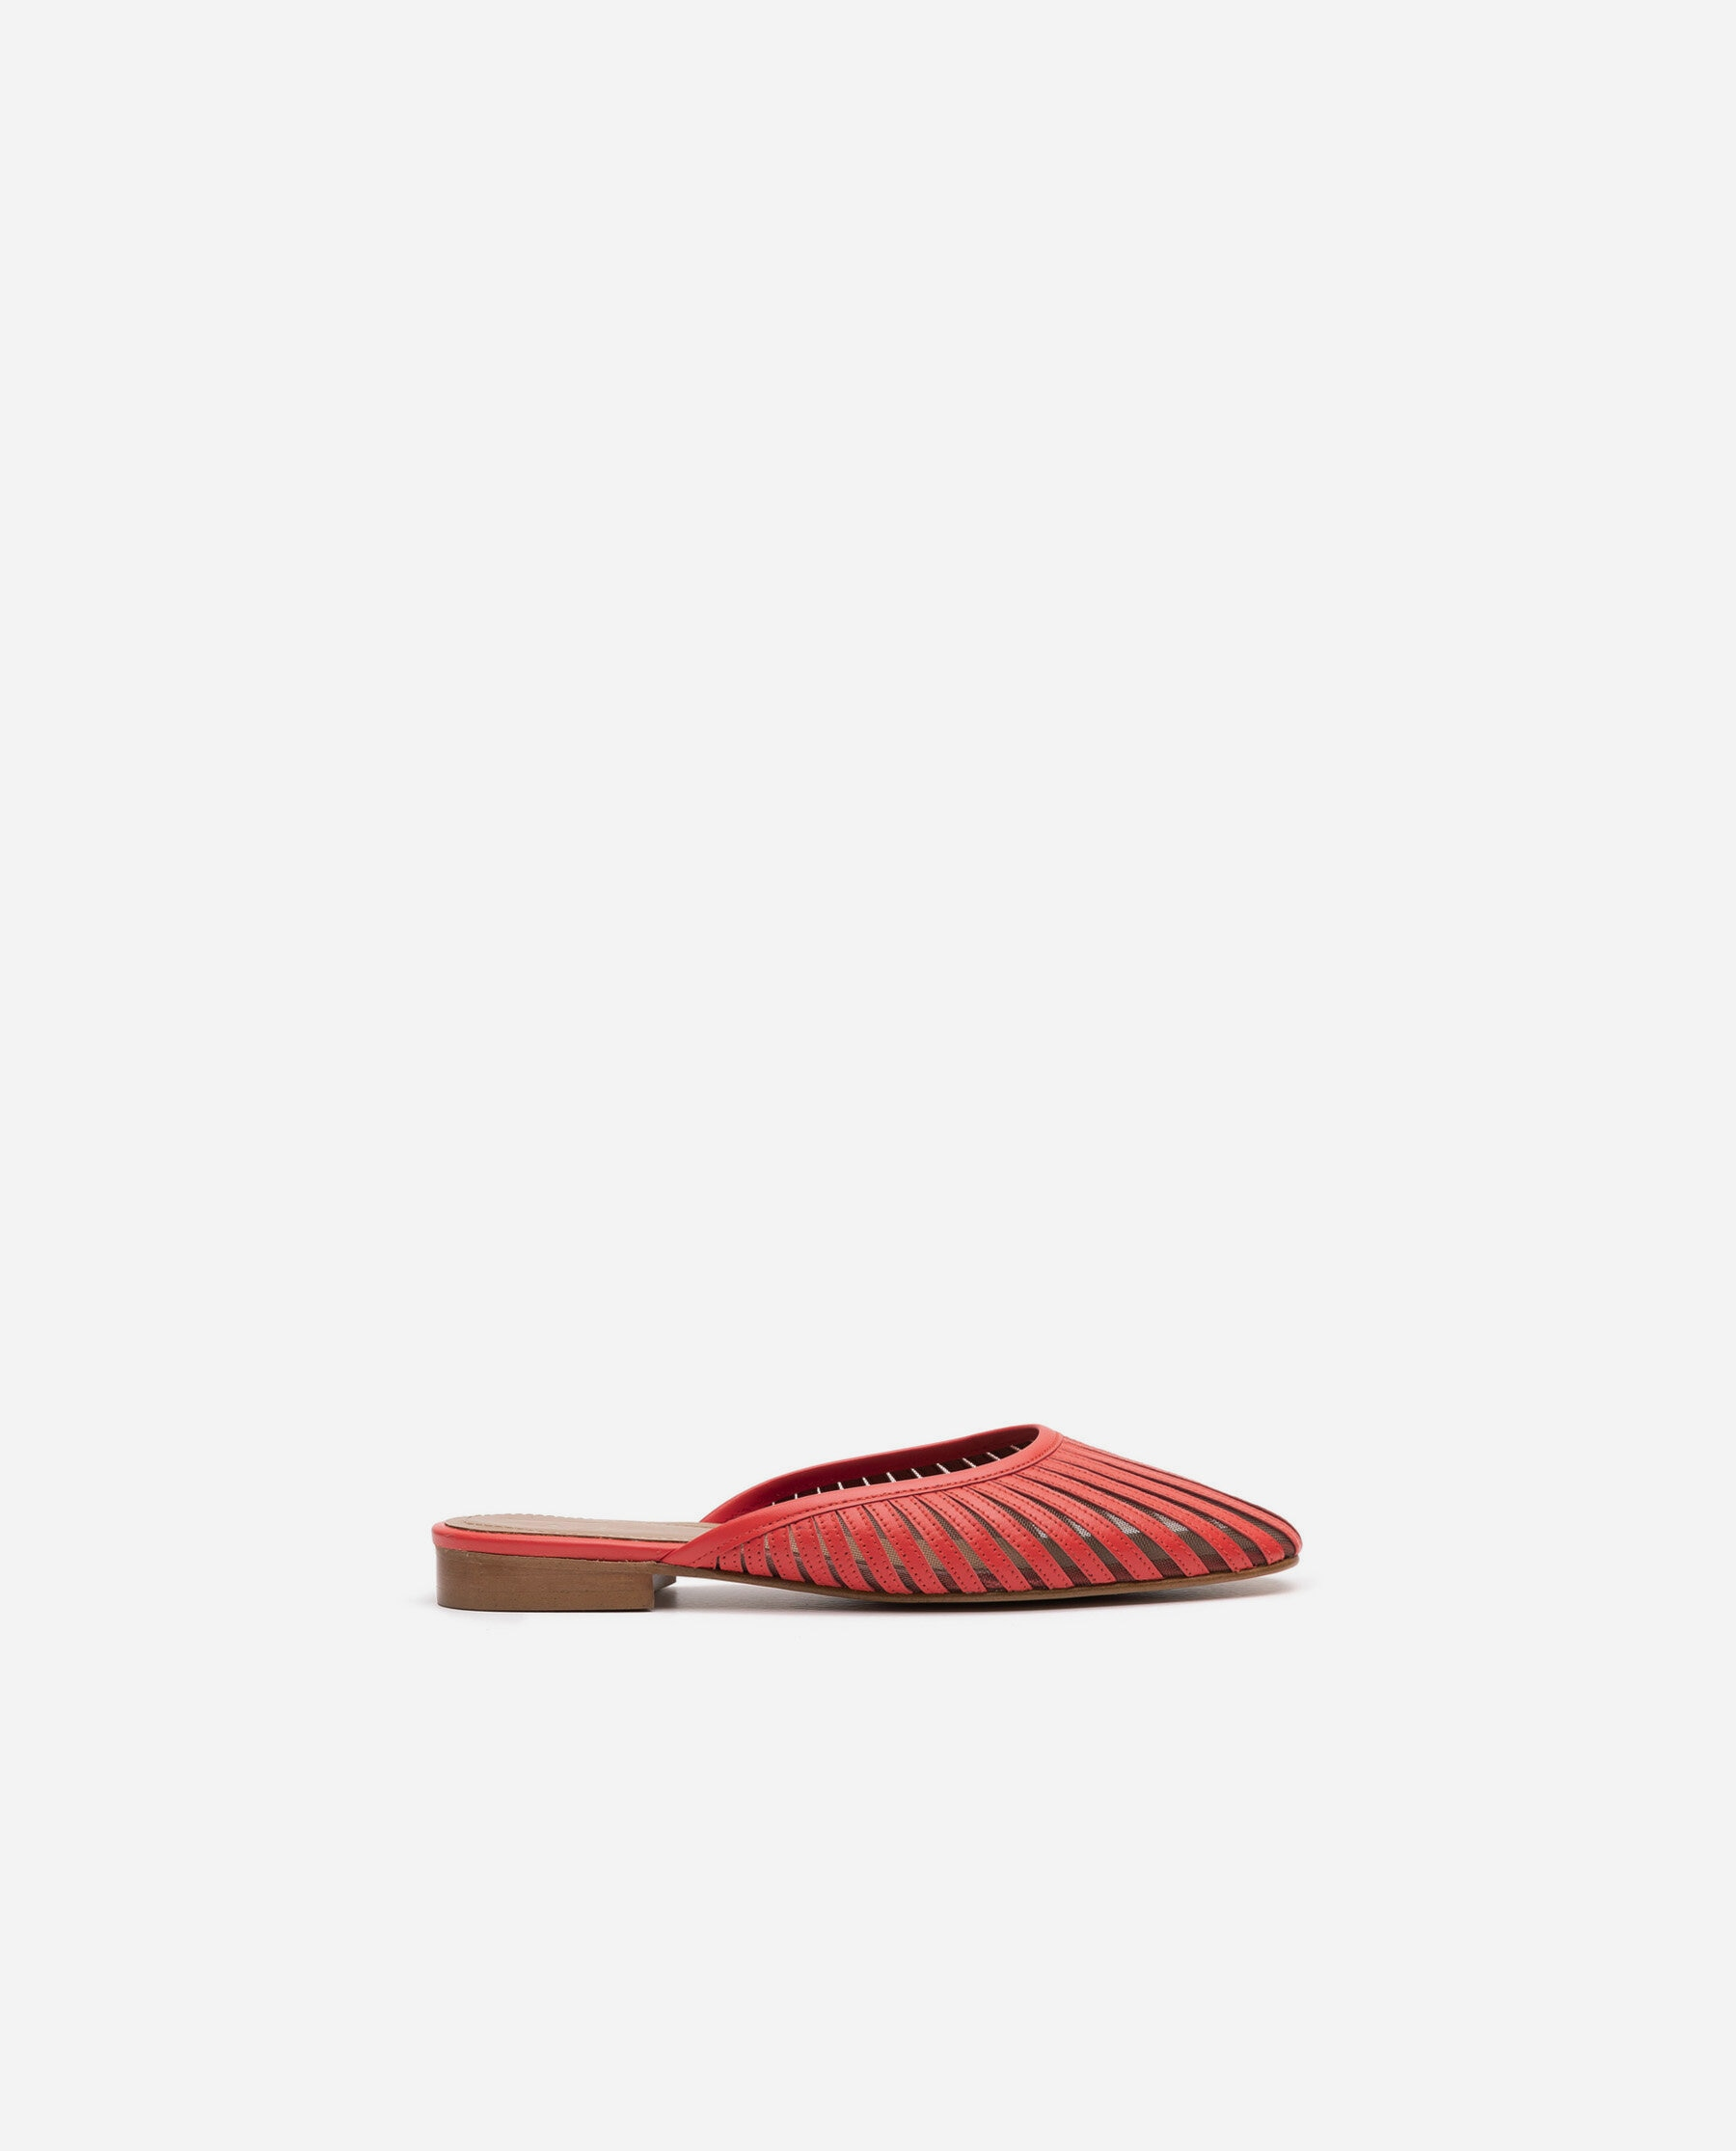 Millie Leather Coral Red